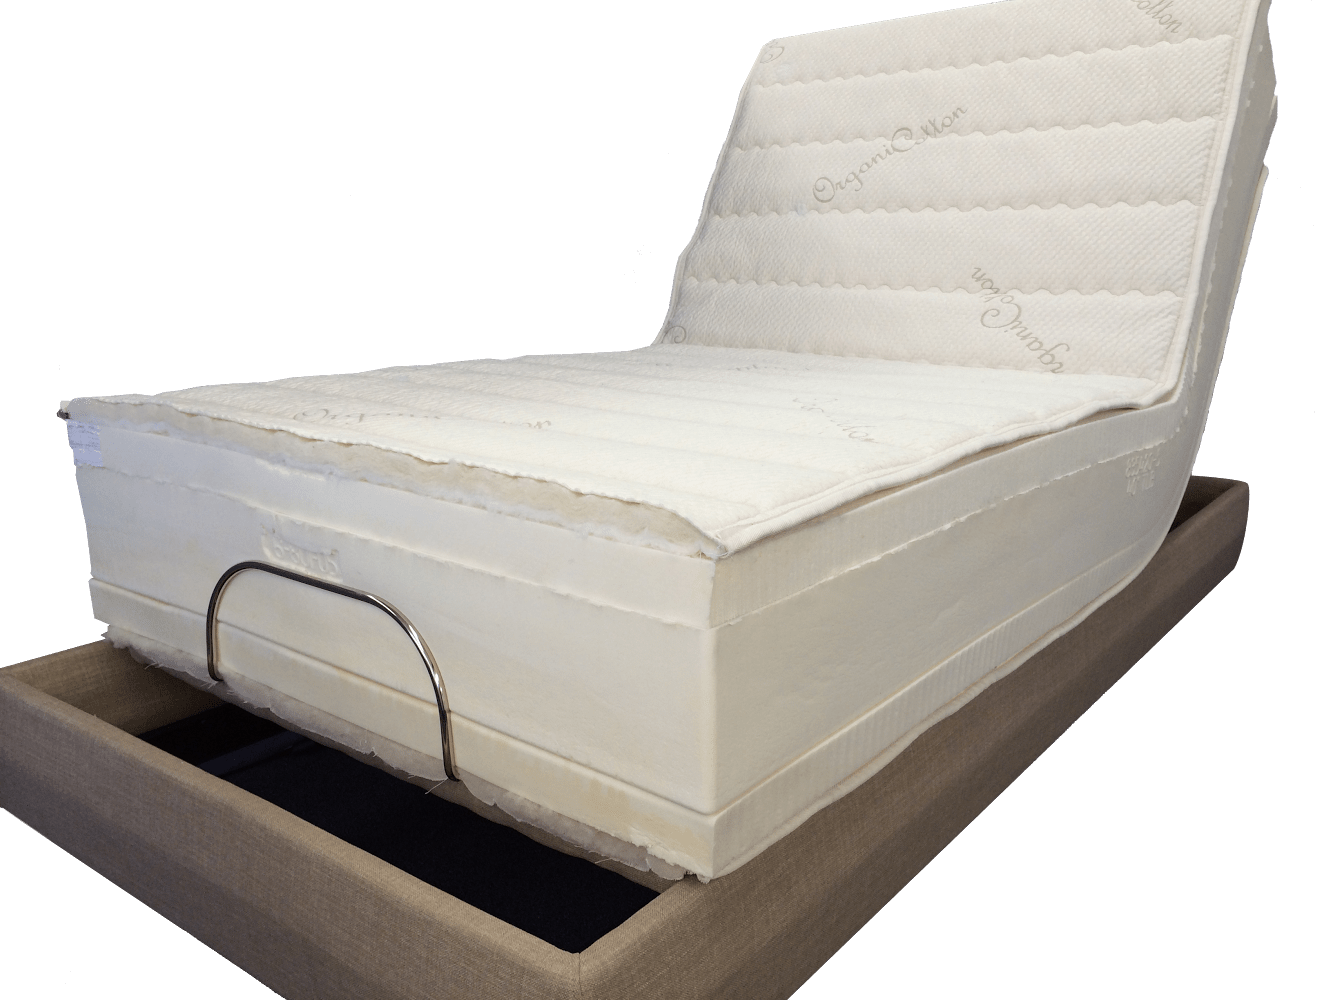 Adjustable Beds Electric Fresno Ca Electropedic Adjustable Beds Electric Sizes Mattresses